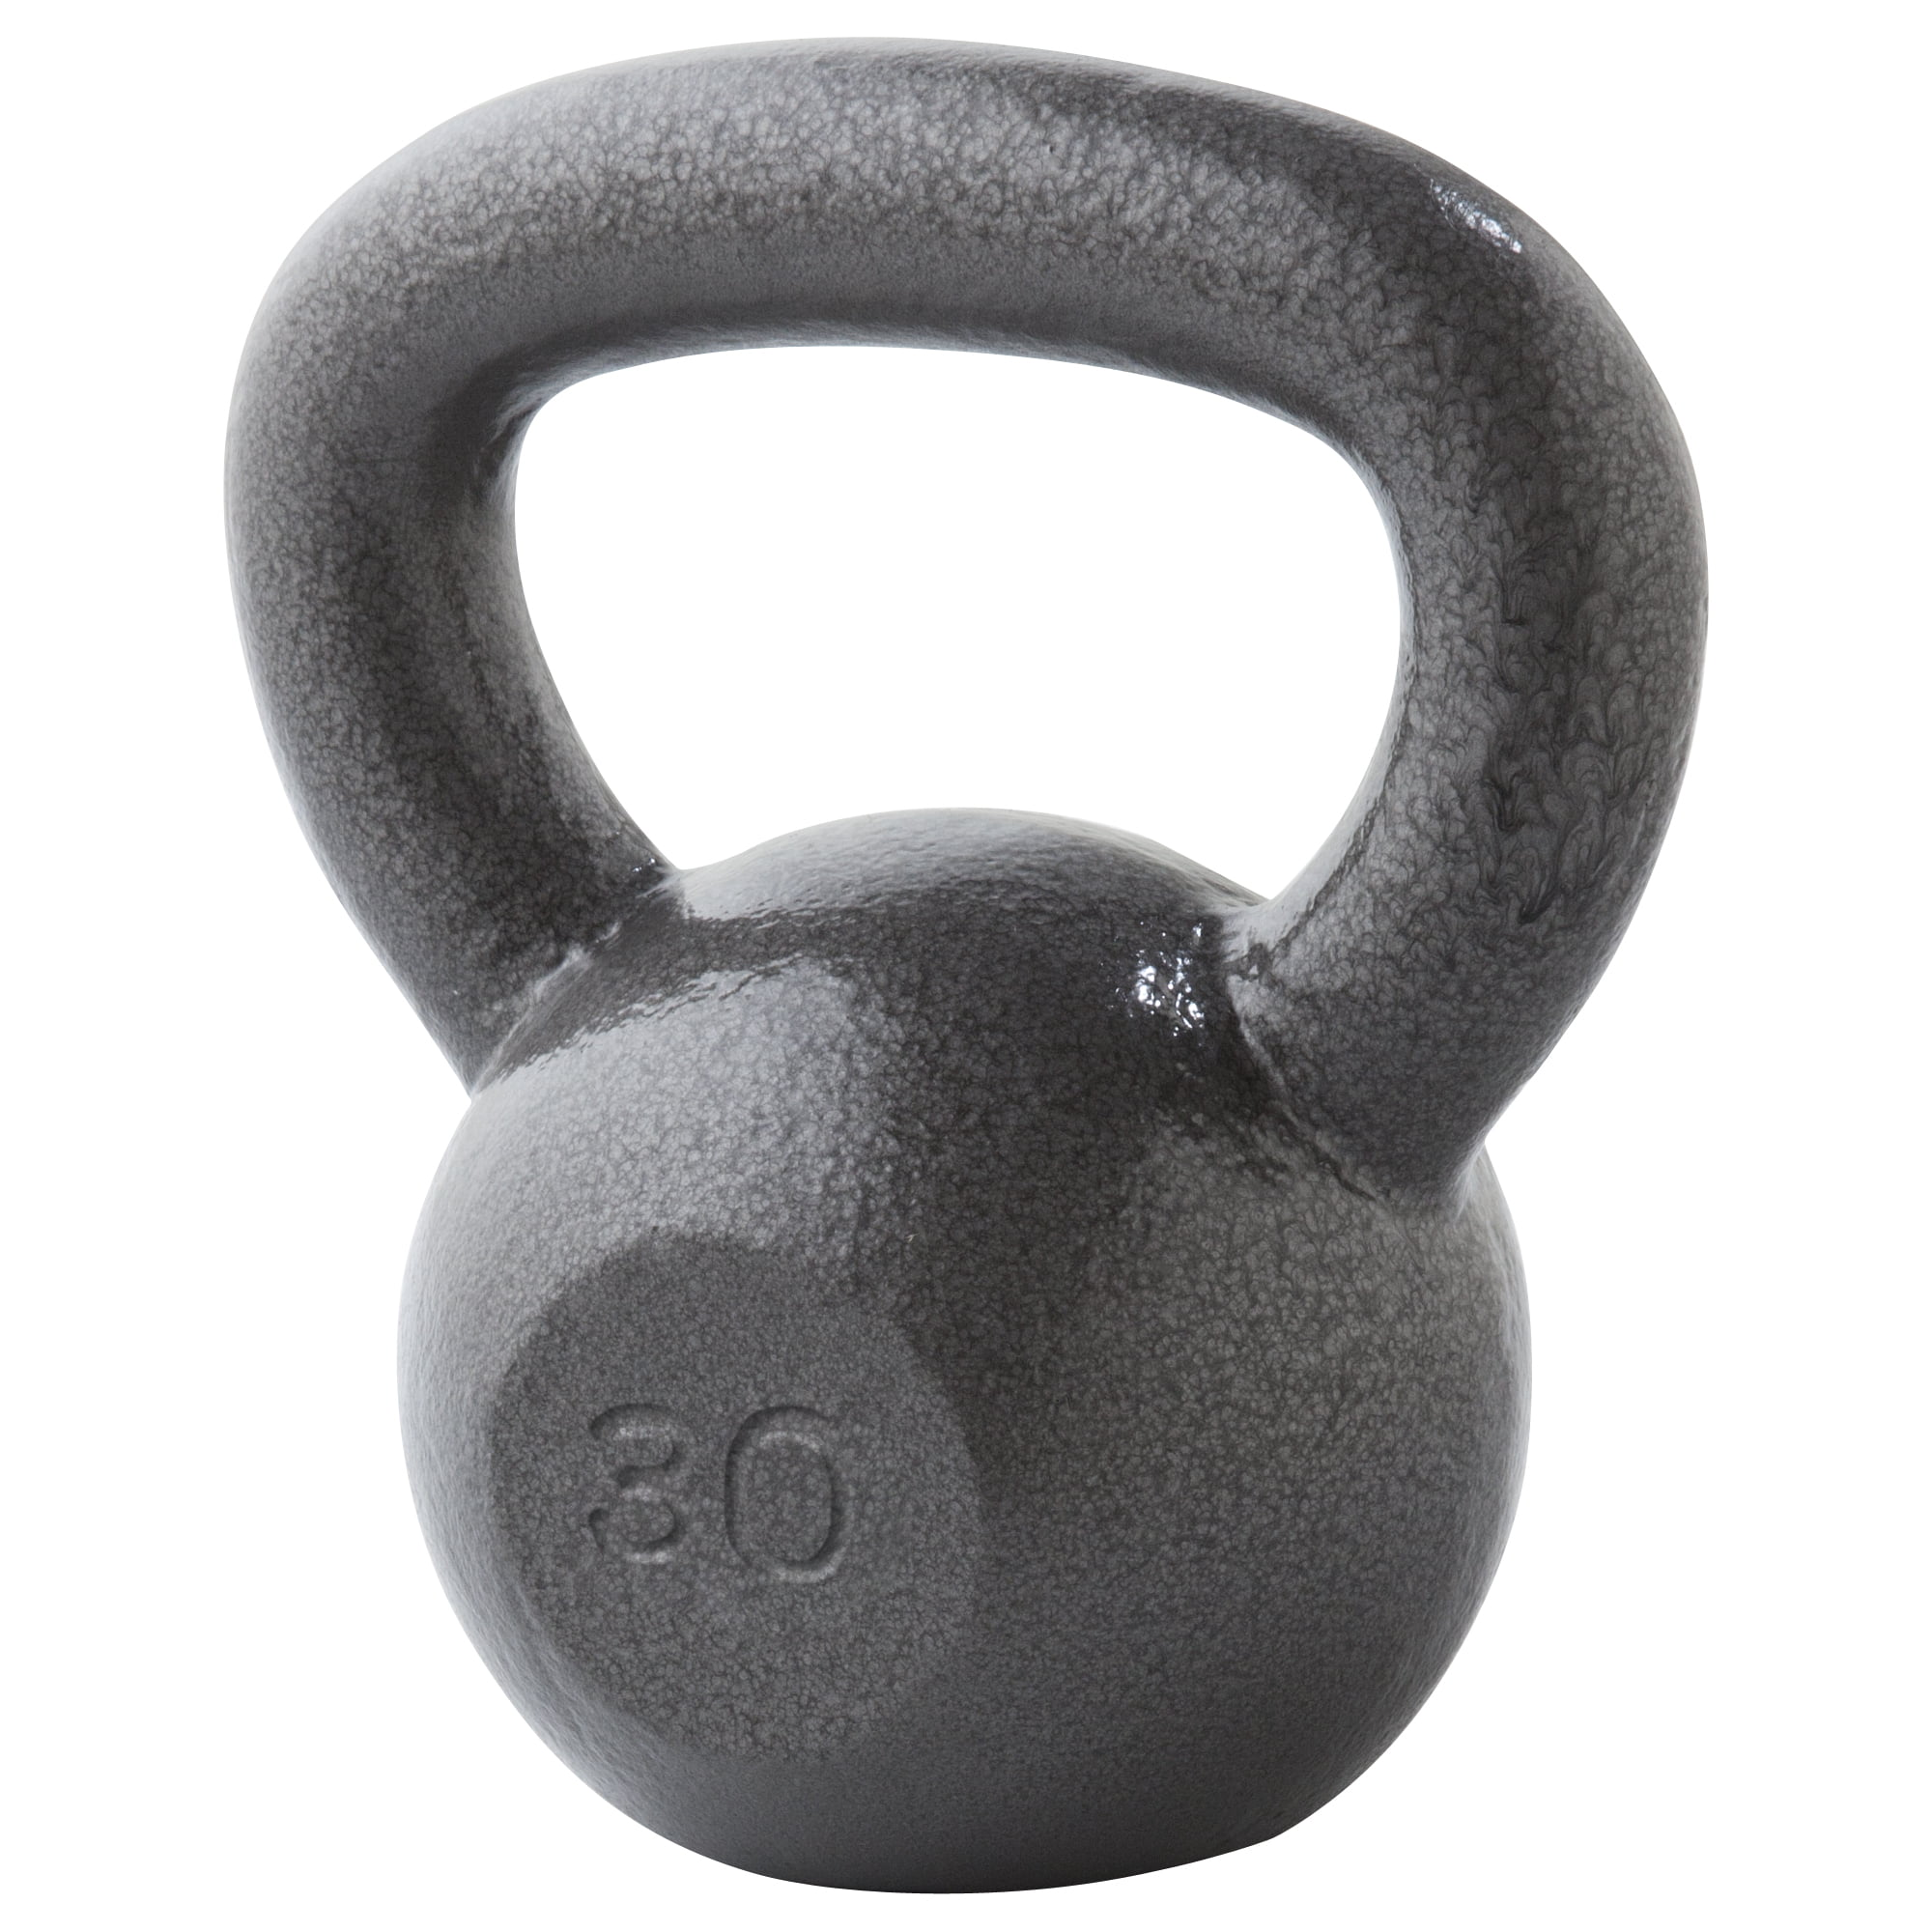 NordicTrack 40//20 lb Adjustable Kettlebell with Wide Handle